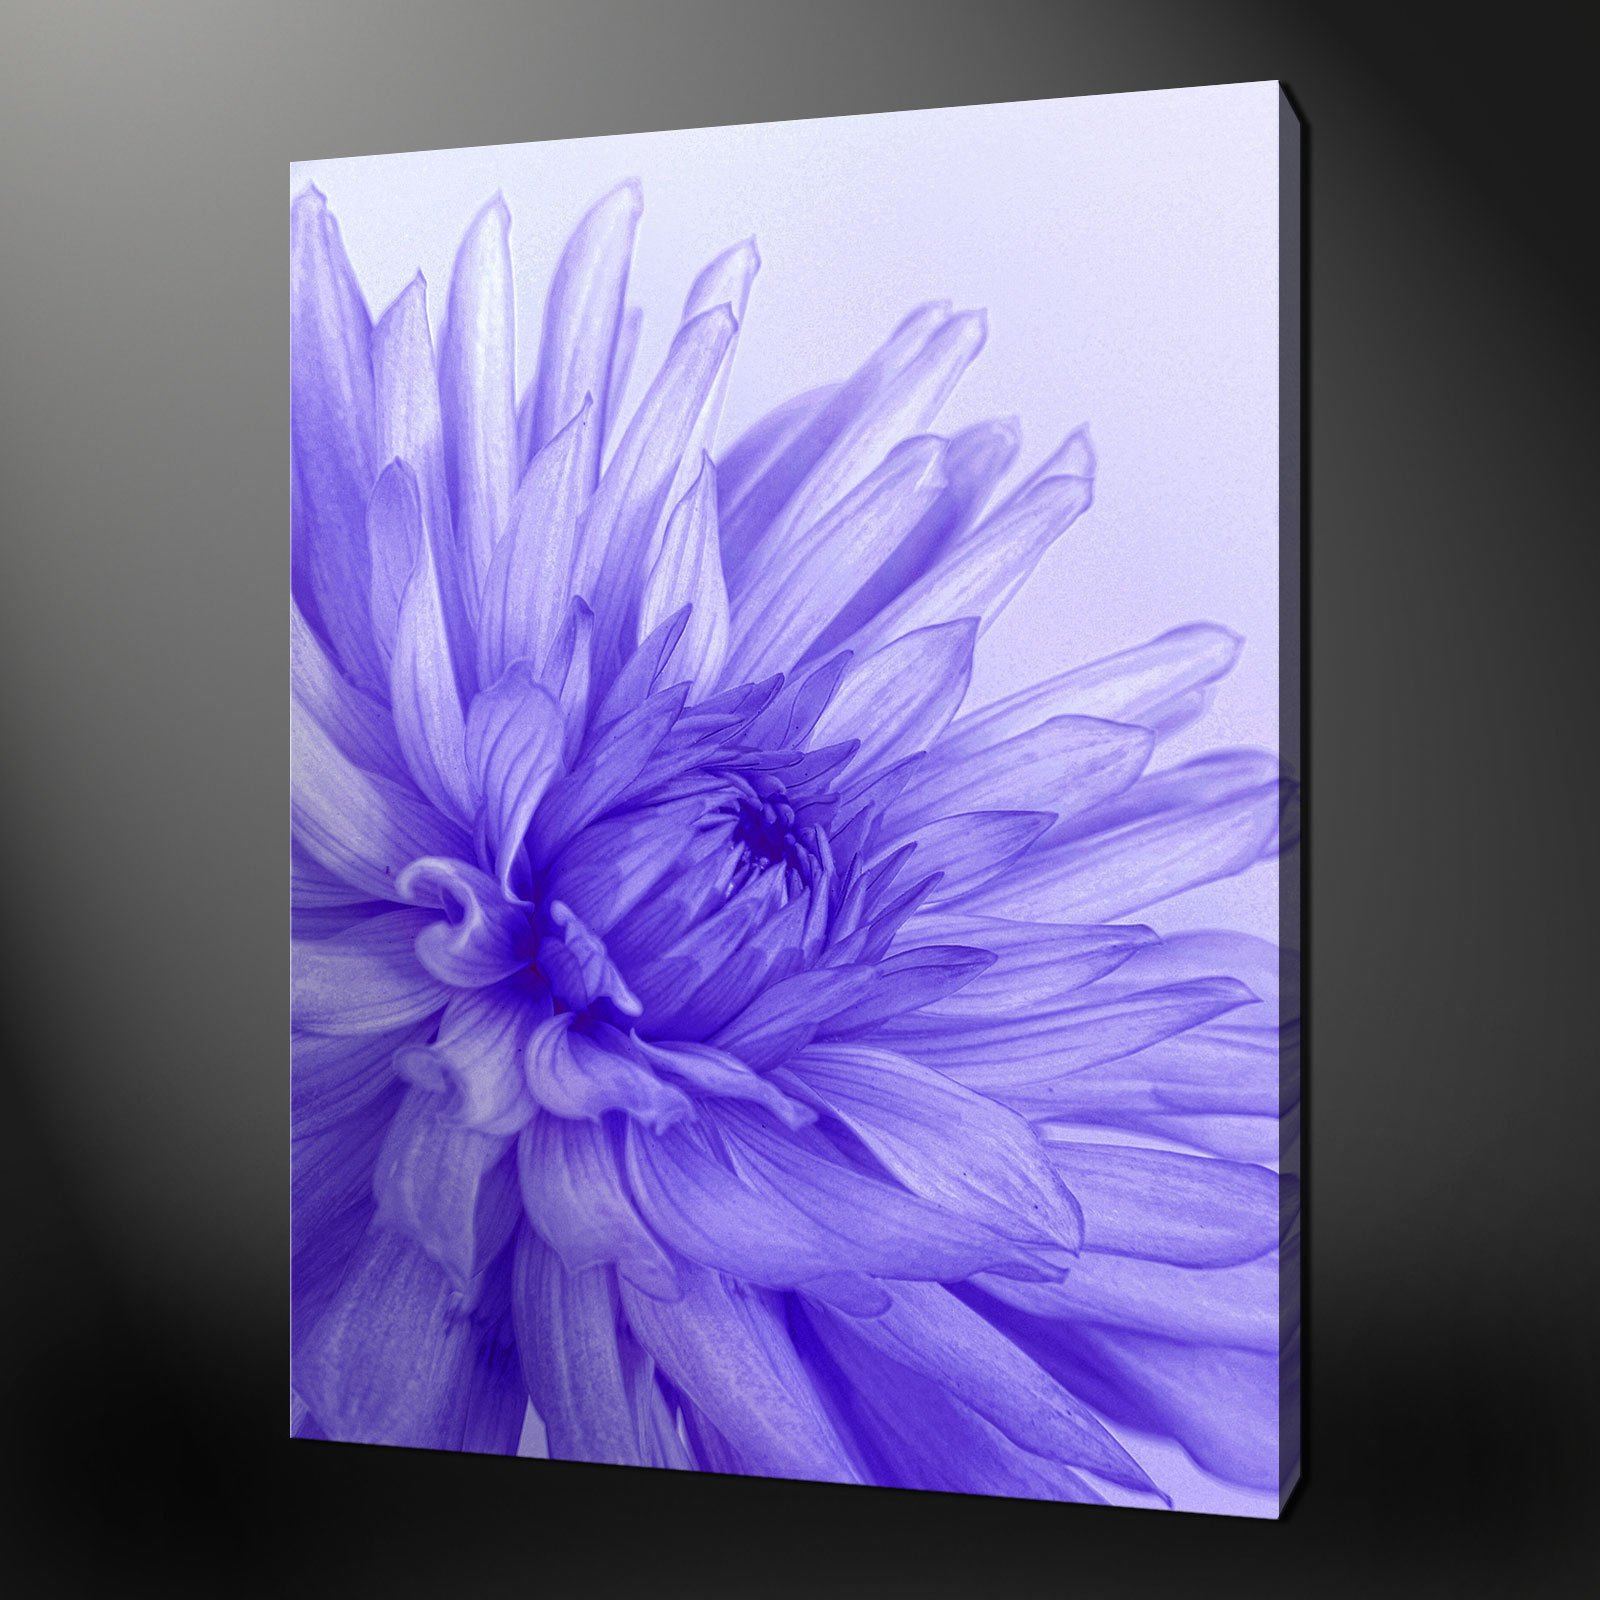 purple flower wall art aliexpress mobile global online shopping for apparel phones with. Black Bedroom Furniture Sets. Home Design Ideas